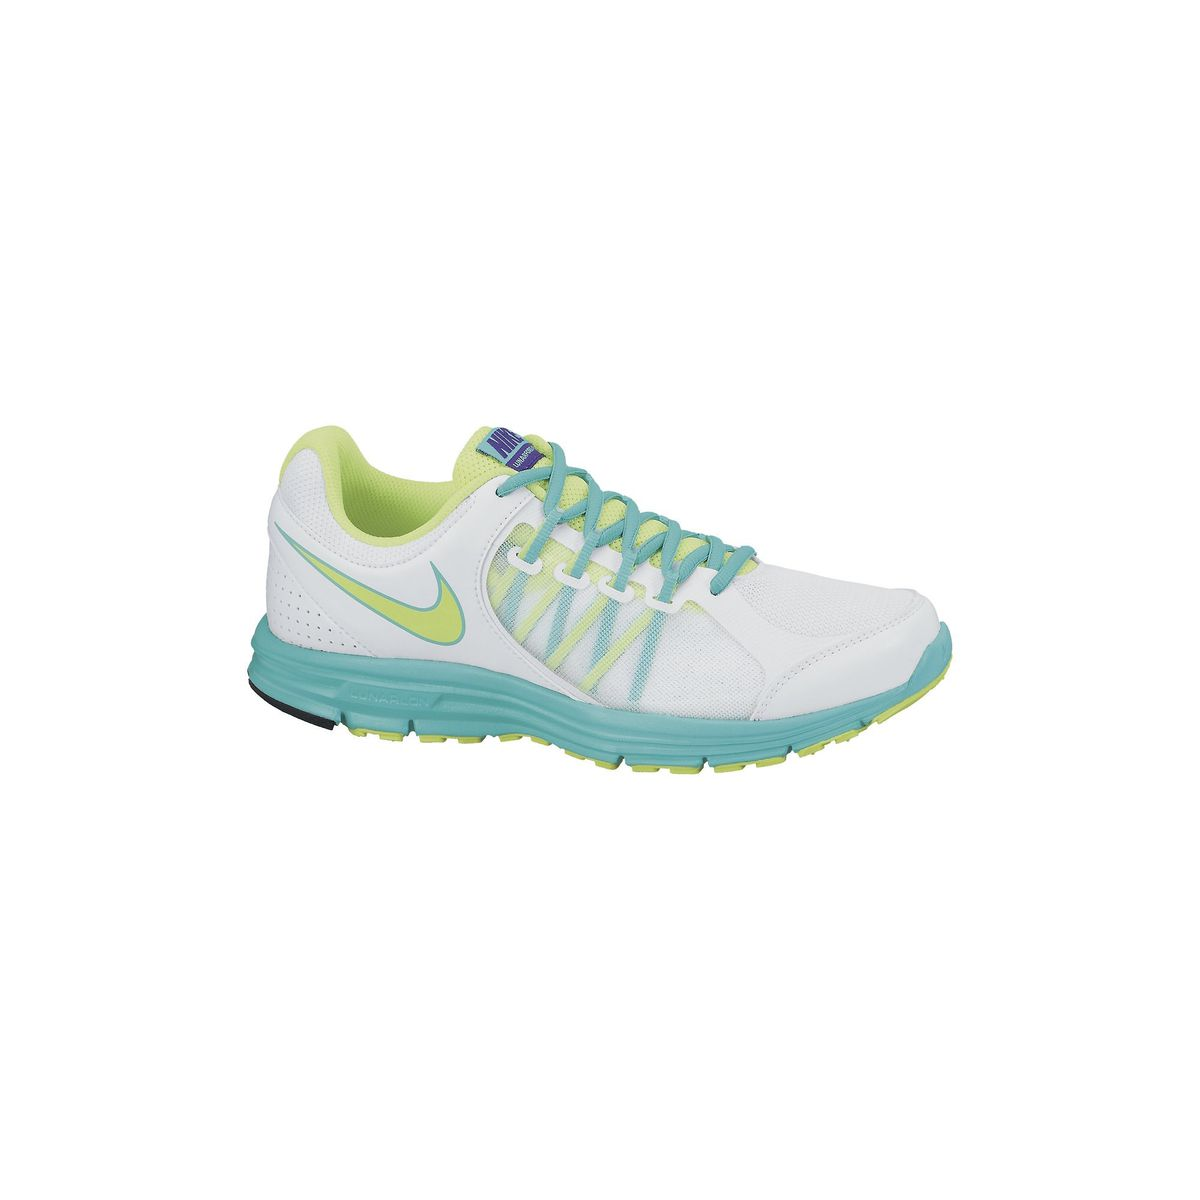 super popular a5649 975a4 nike lunar forever 3 high performance running shoes